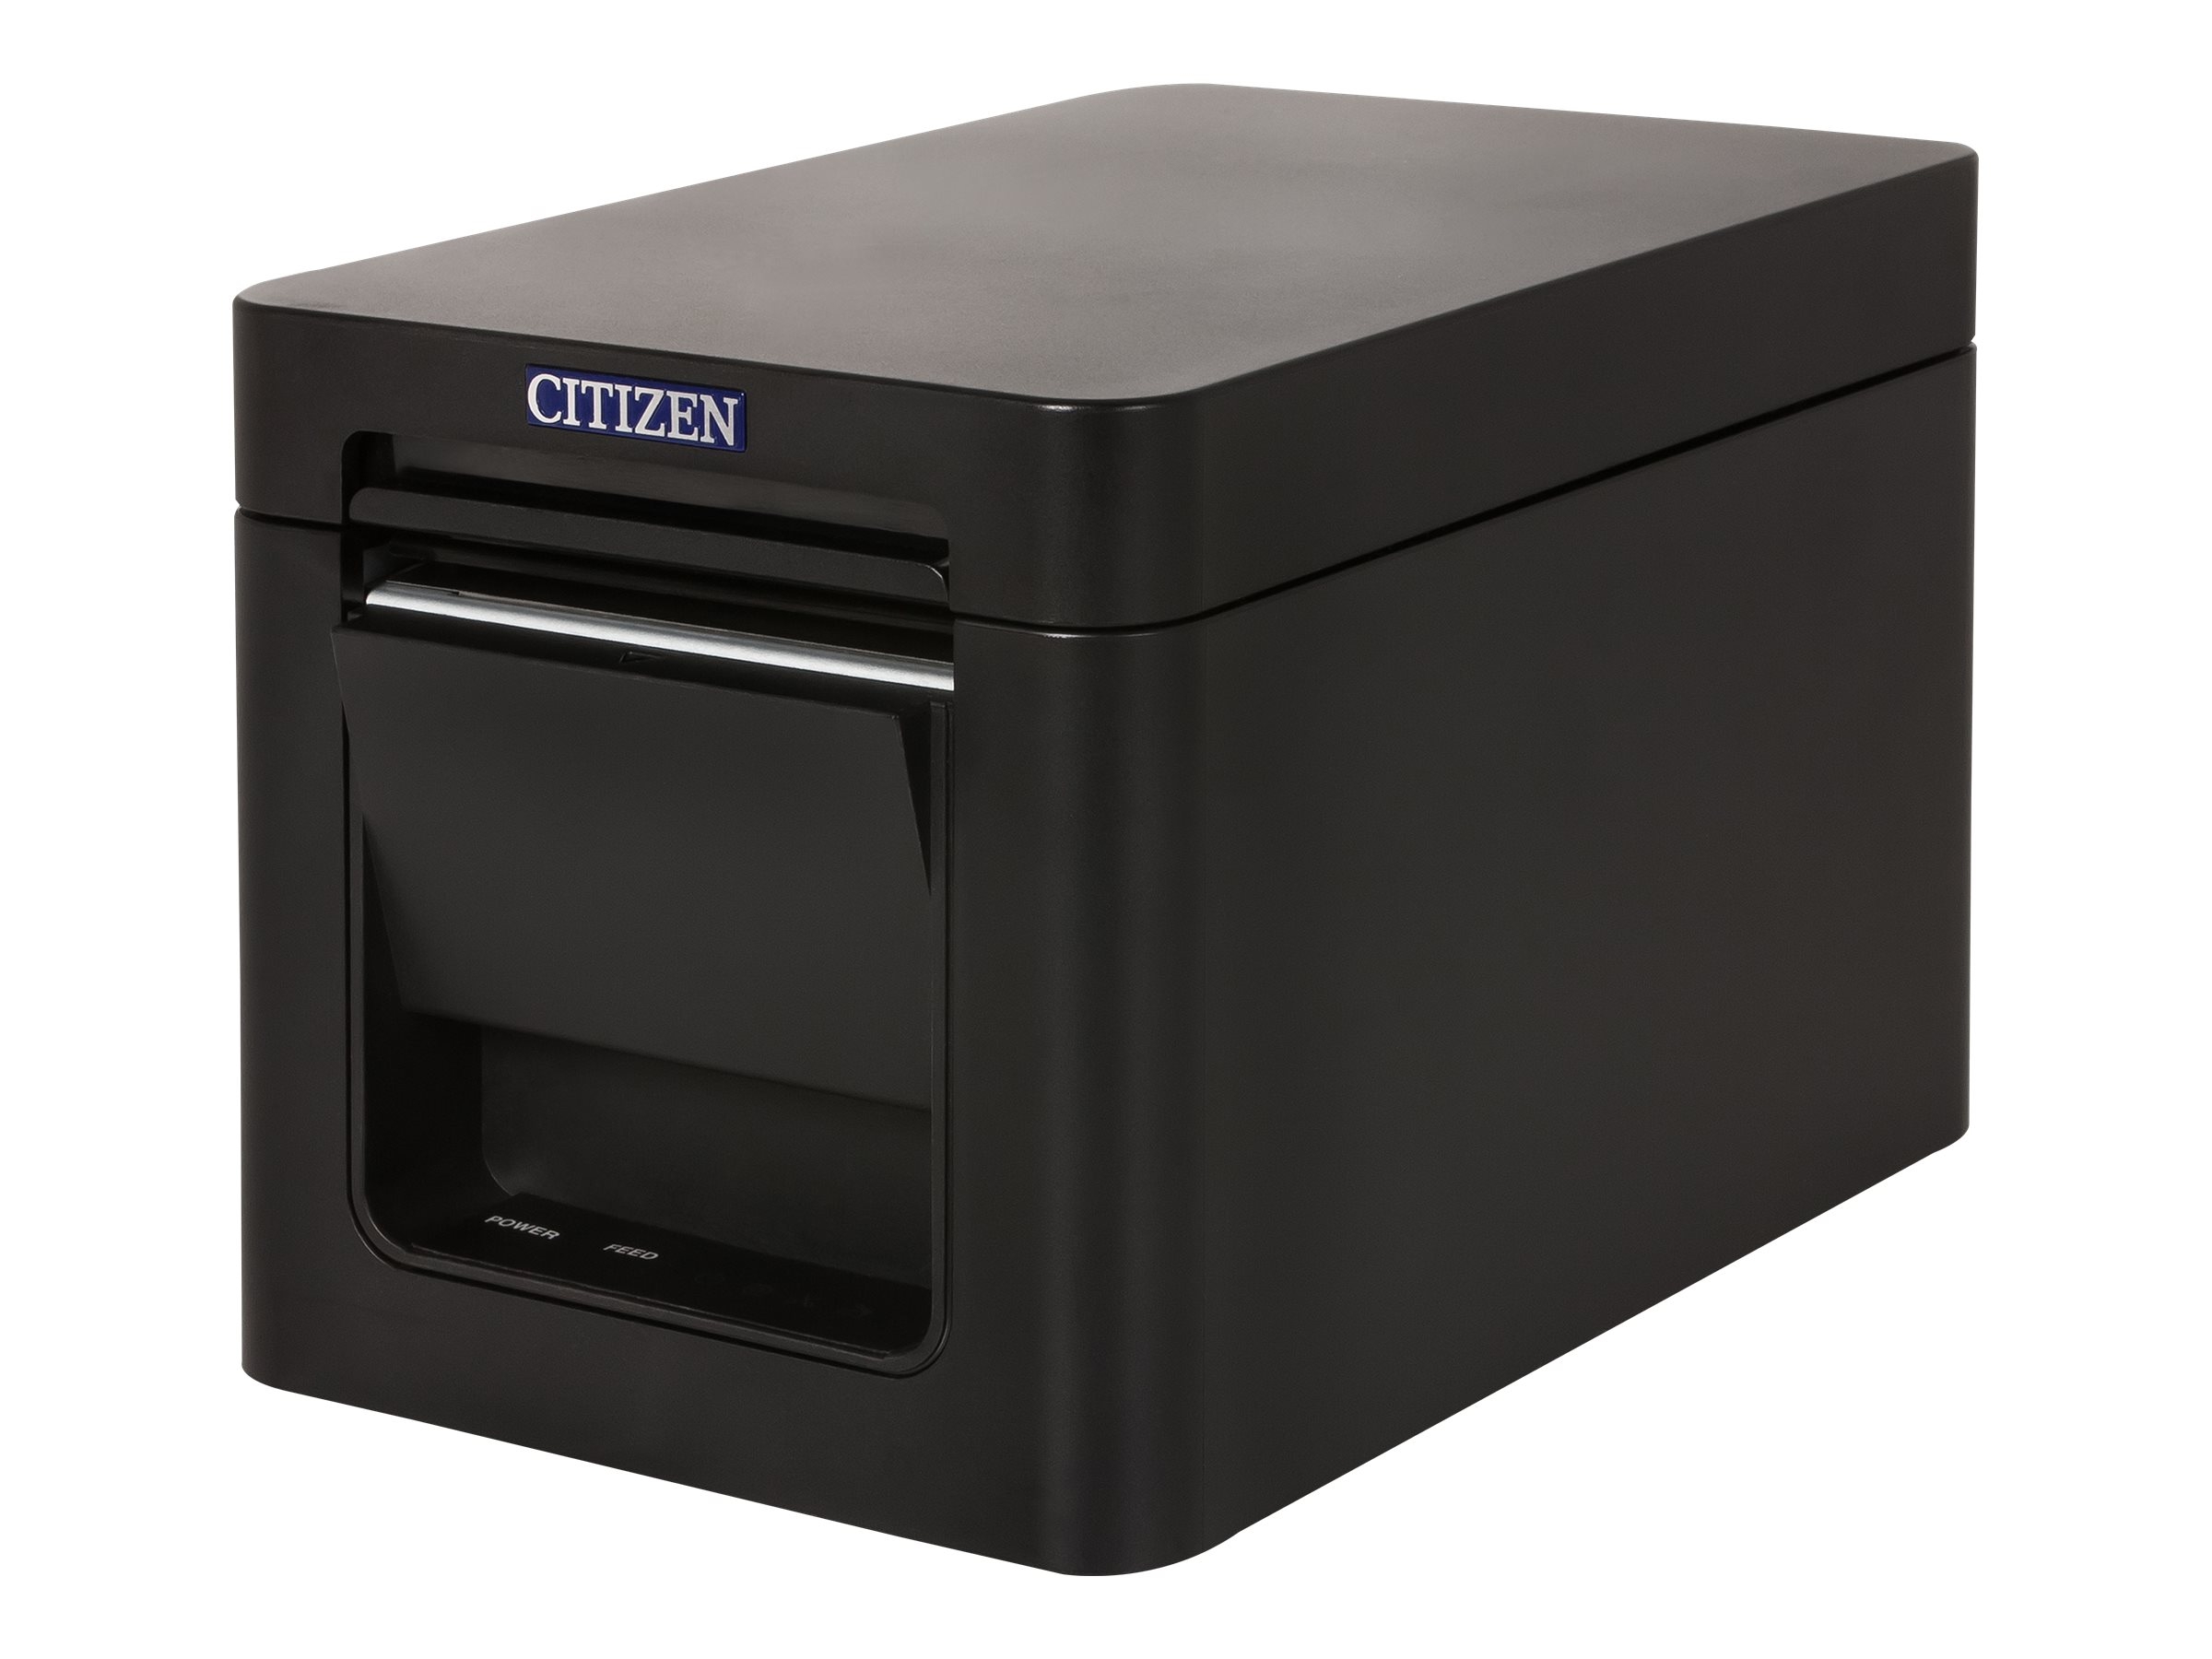 Citizen CT-S251 - Belegdrucker